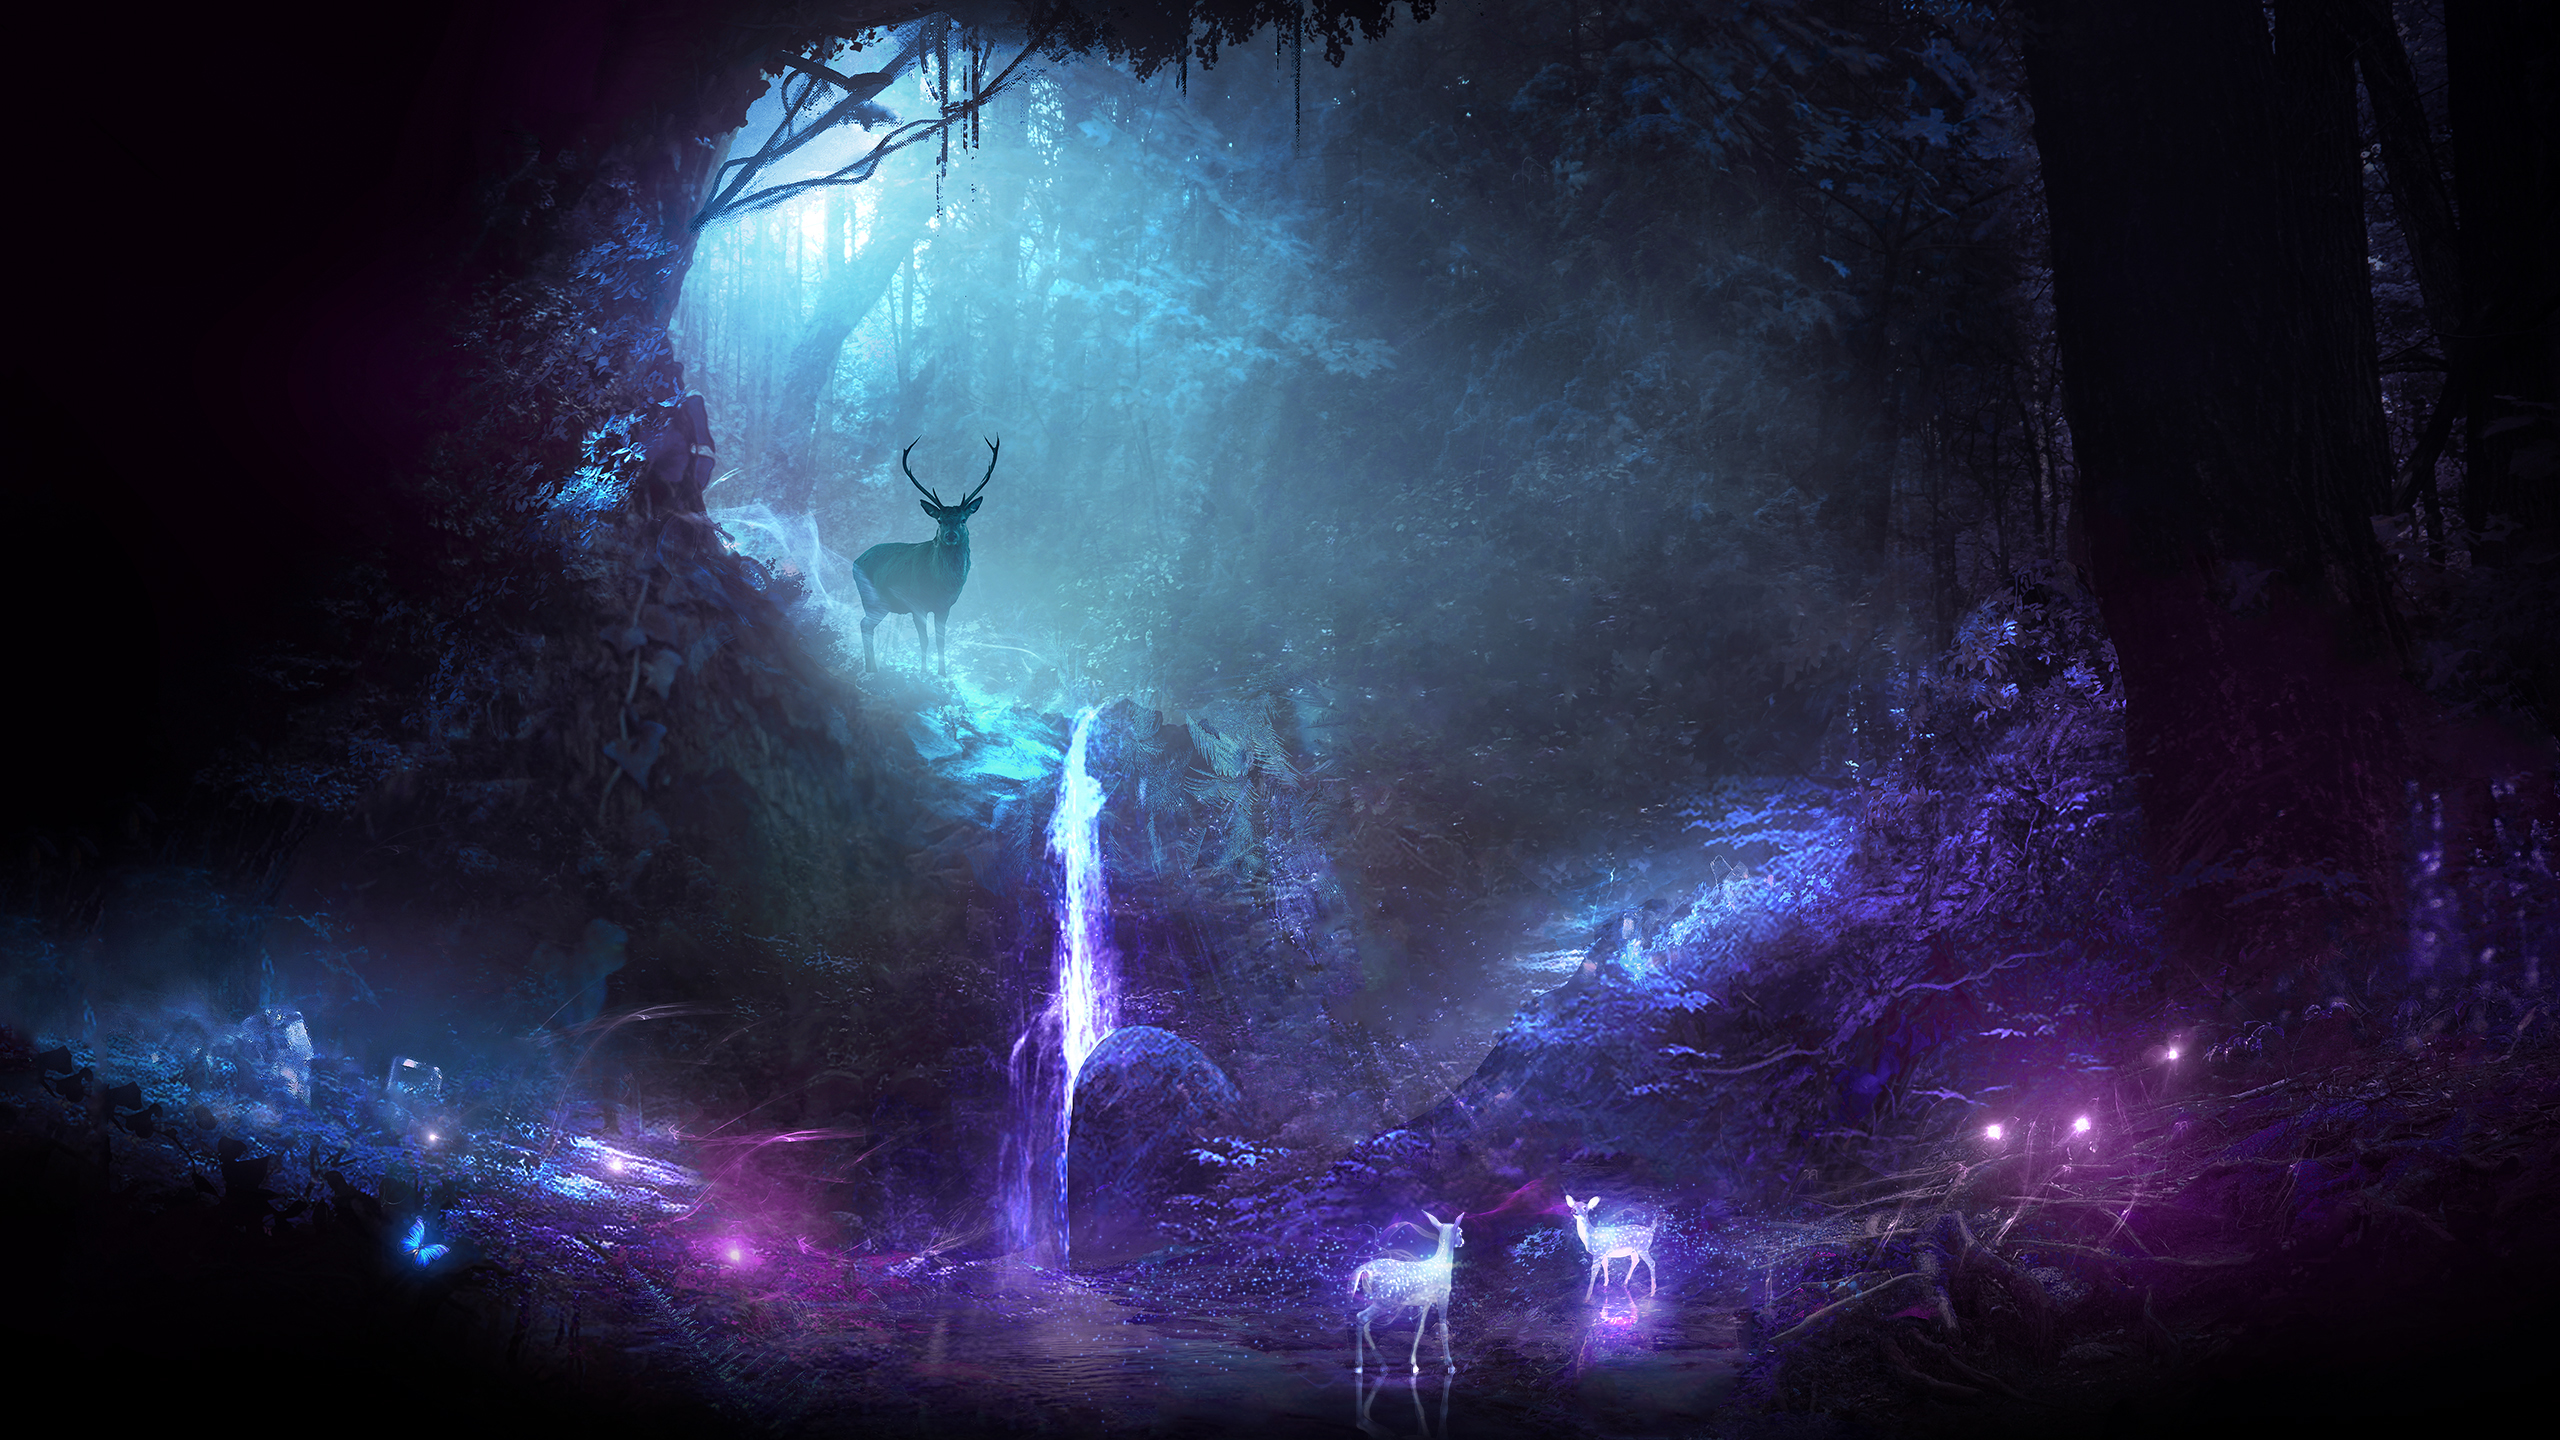 Cute Background Wallpaper For Computer Christmas Lights Animal Hd Deer Hd Wallpaper Background Image 2560x1440 Id